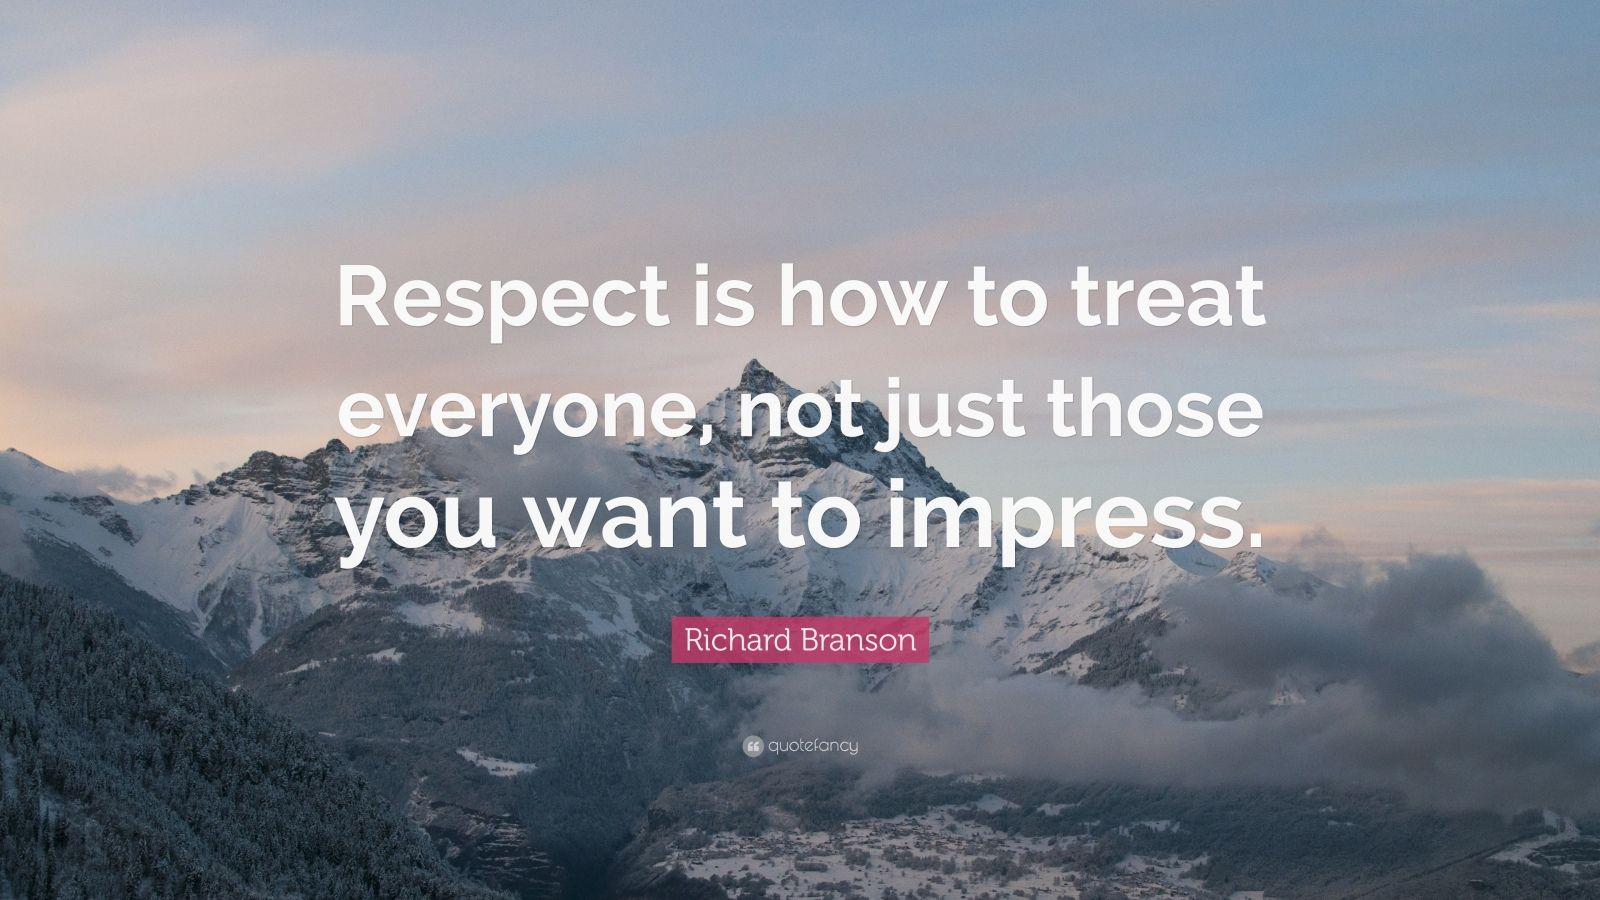 """Richard Branson Quote: """"Respect is how to treat everyone, not just those you want to impress."""""""